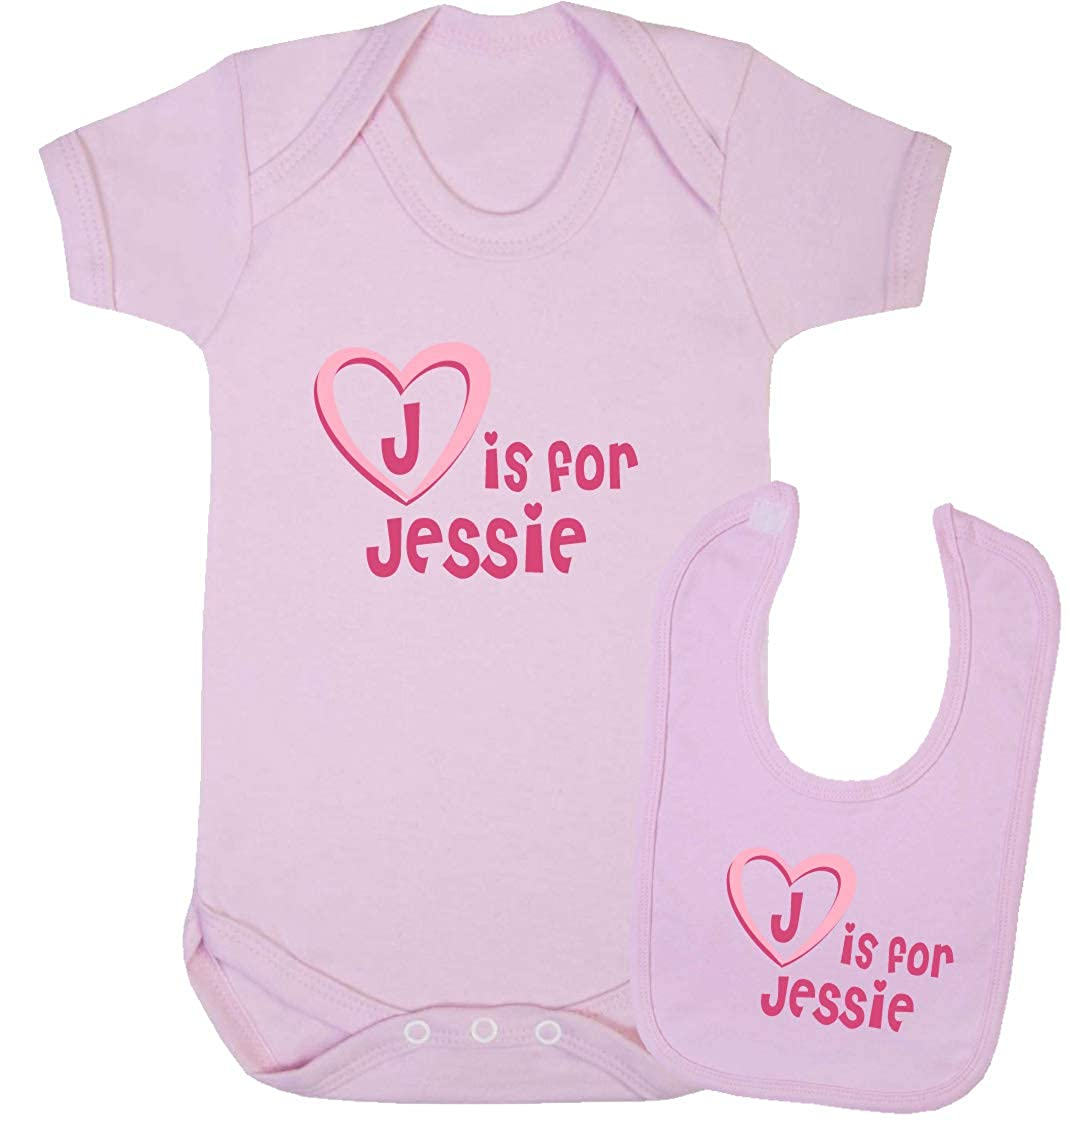 J is for Jessie Baby Gift Set Vest and Bib